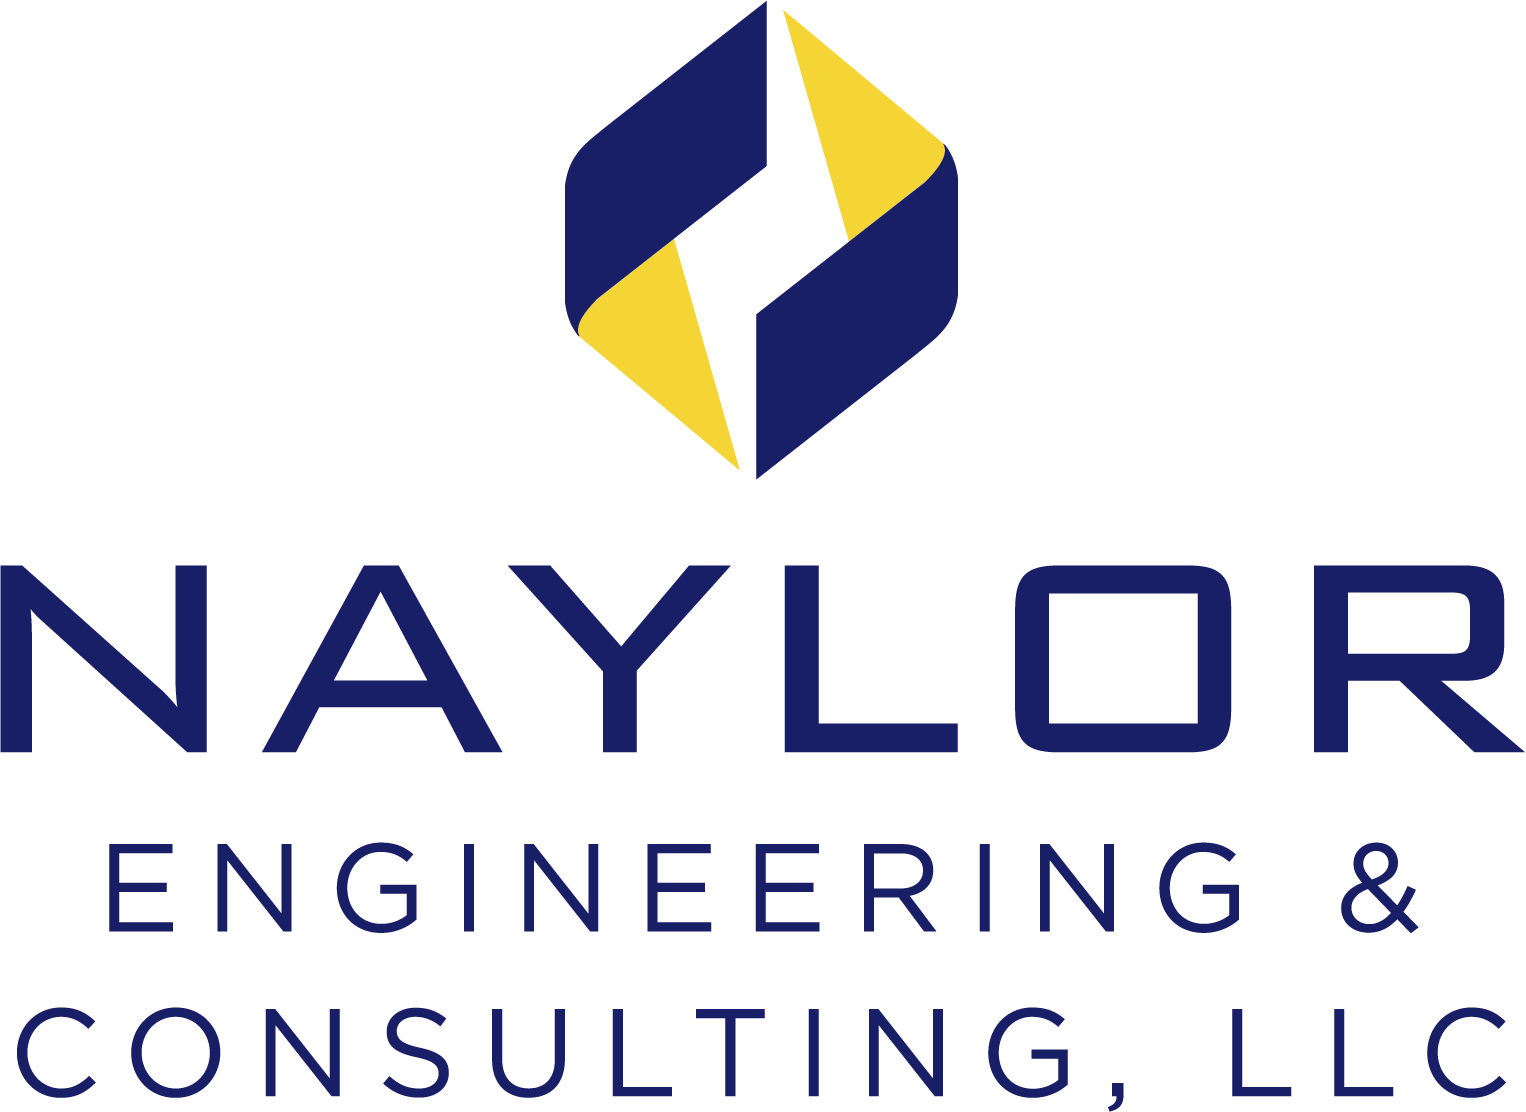 Naylor Engineering & Consulting